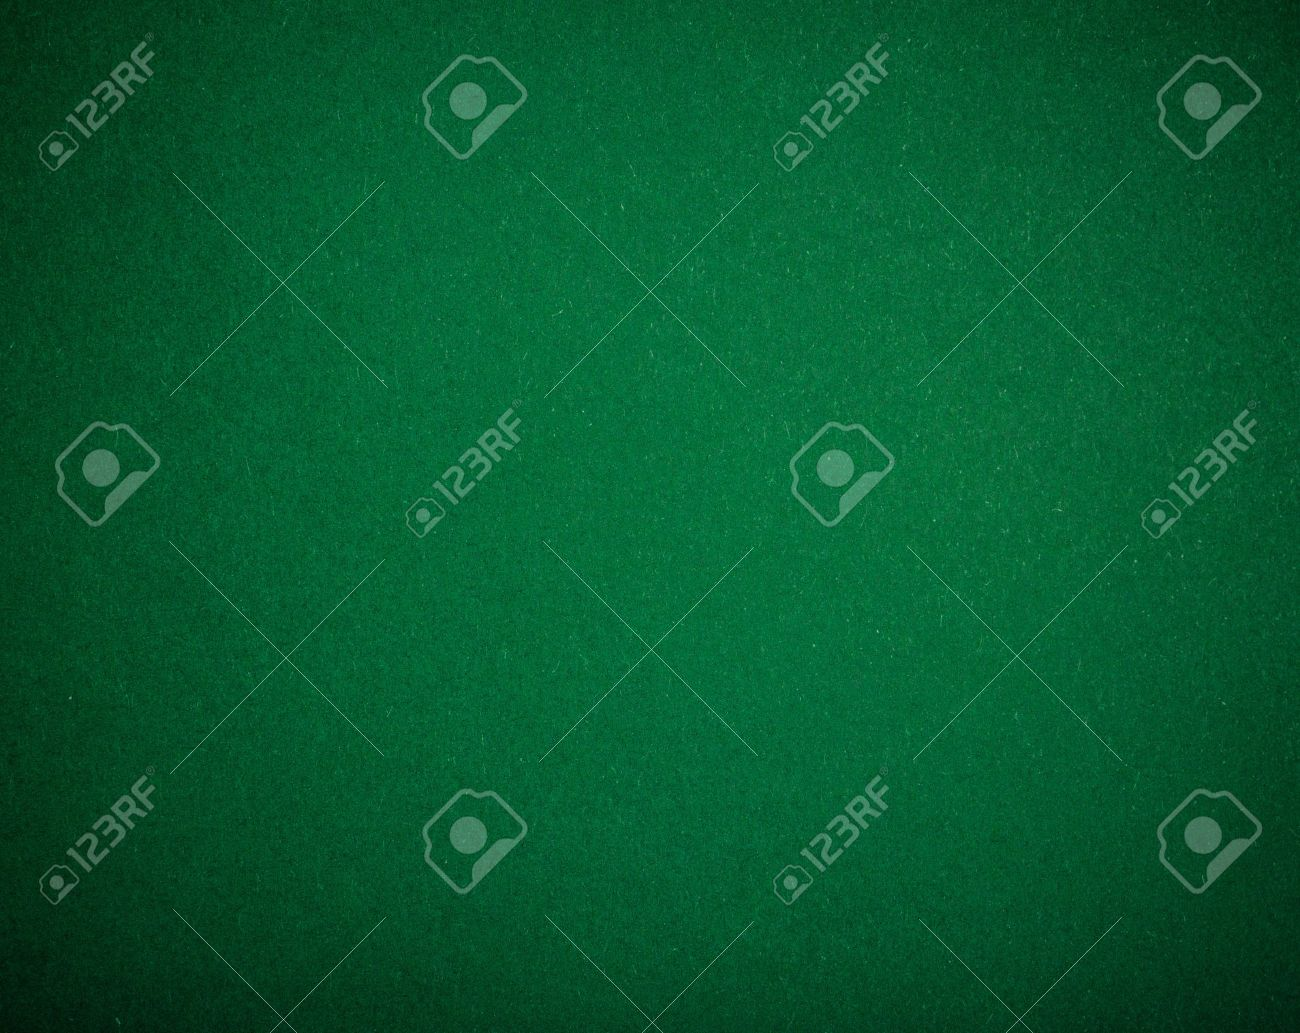 Poker table background - Poker Table Felt Background In Green Color Stock Photo 18230883